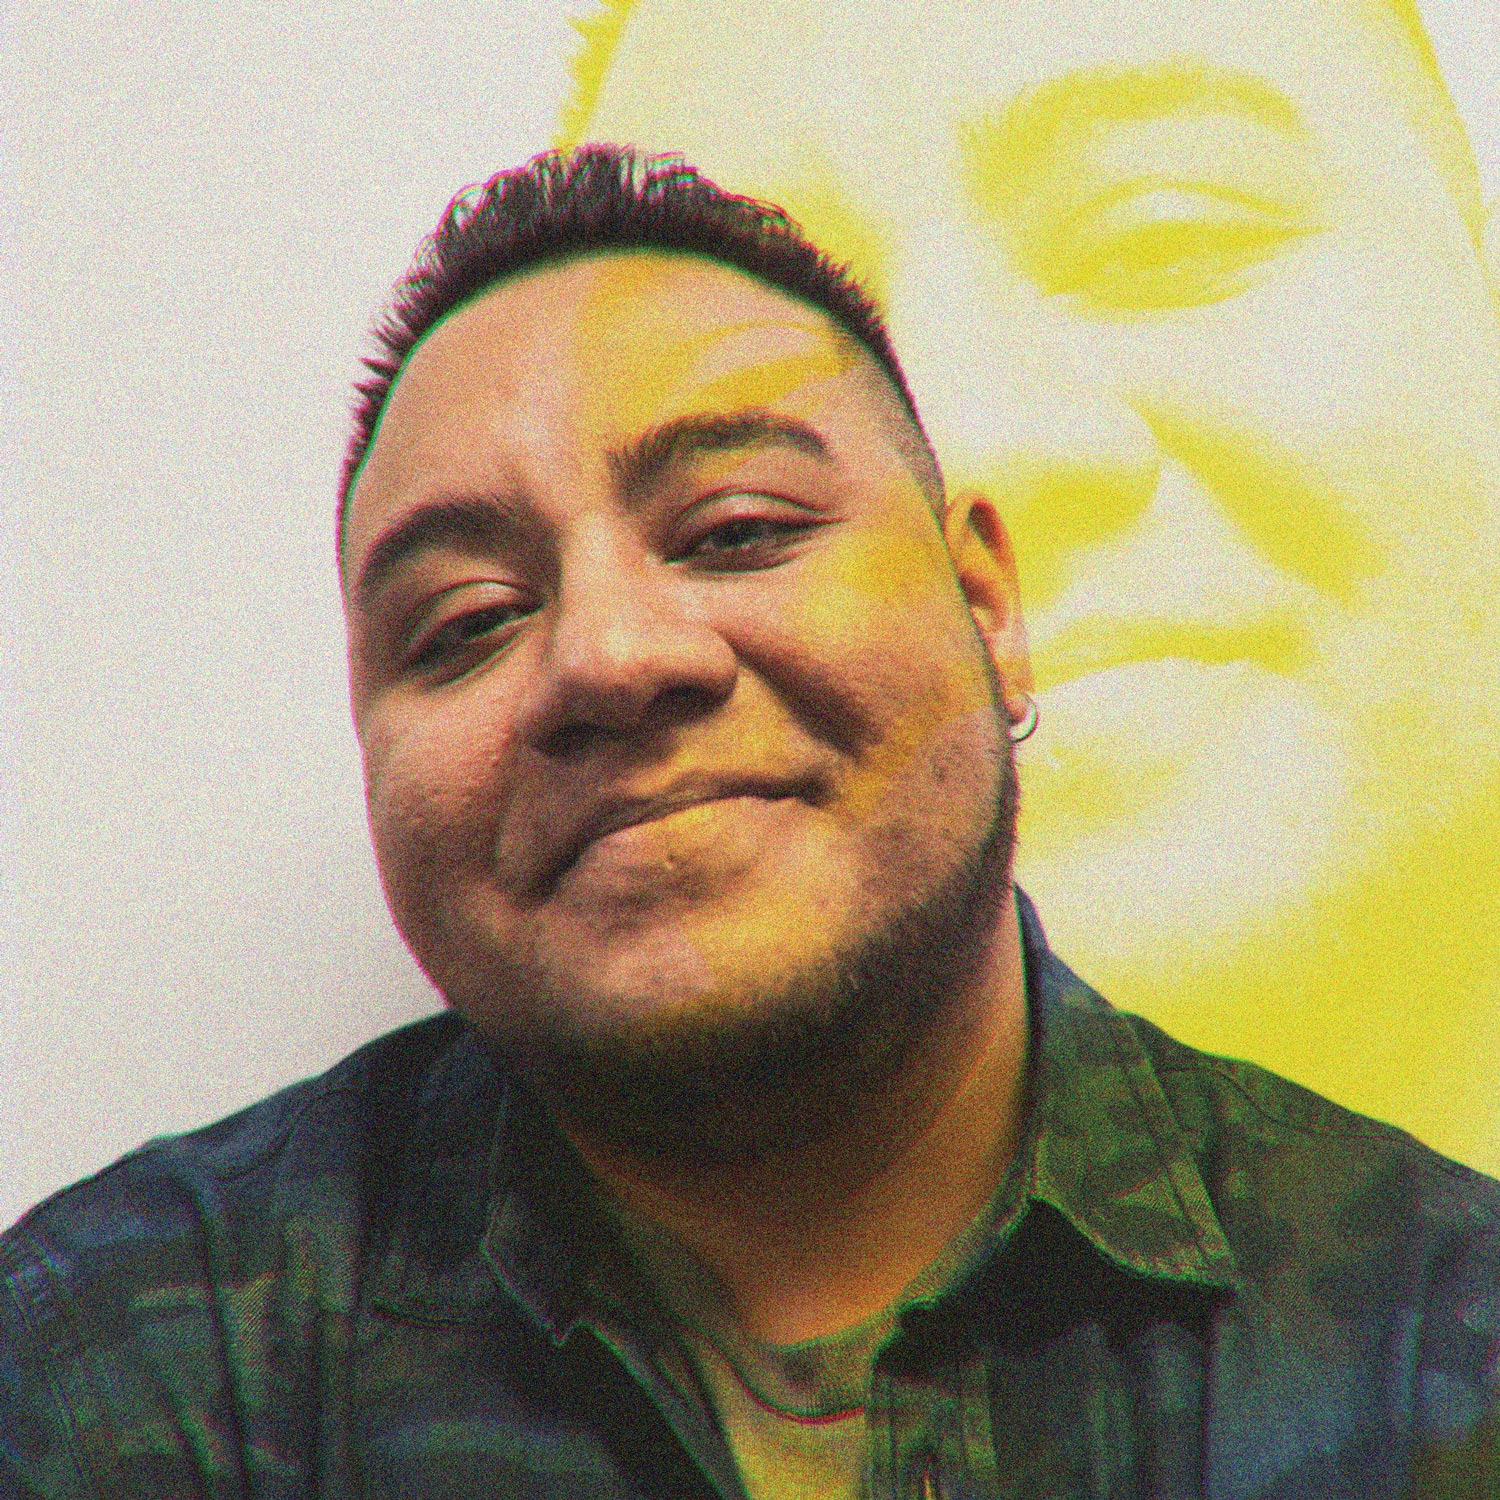 crispin torres - Brand Partnerships & Outreach